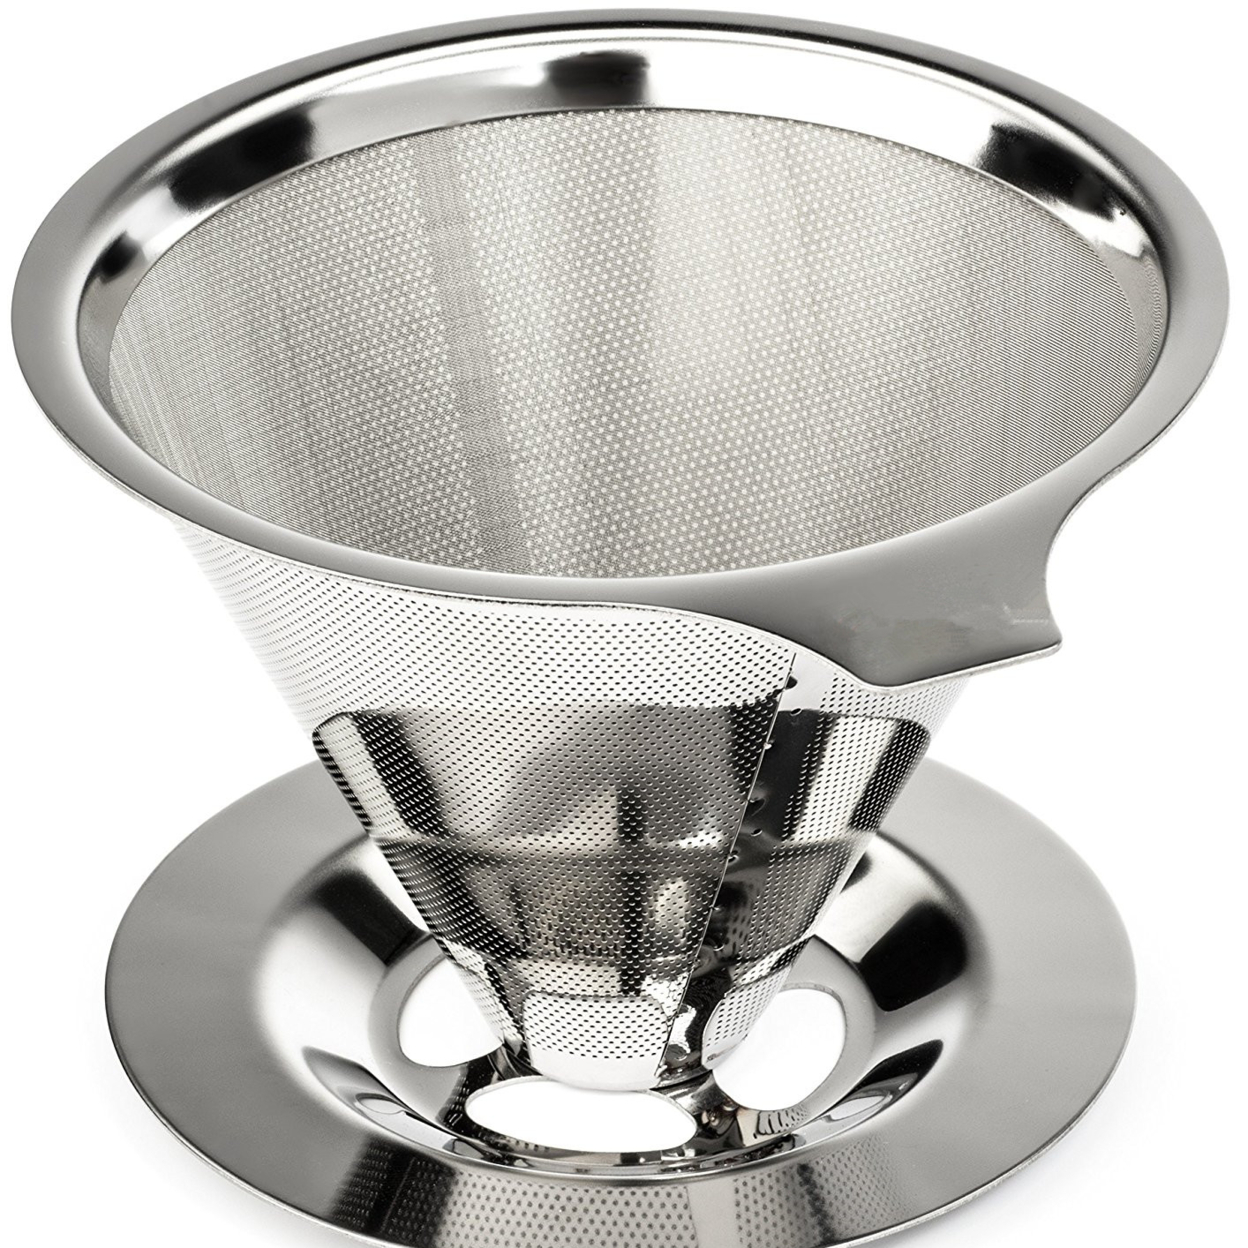 Paperless Pour Over Coffee Maker, 18\\8 (304) Stainless Steel Reusable Drip Cone Coffee Filter, Single Cup Coffee Brewer 59ad1e56cd5c8633c905208d